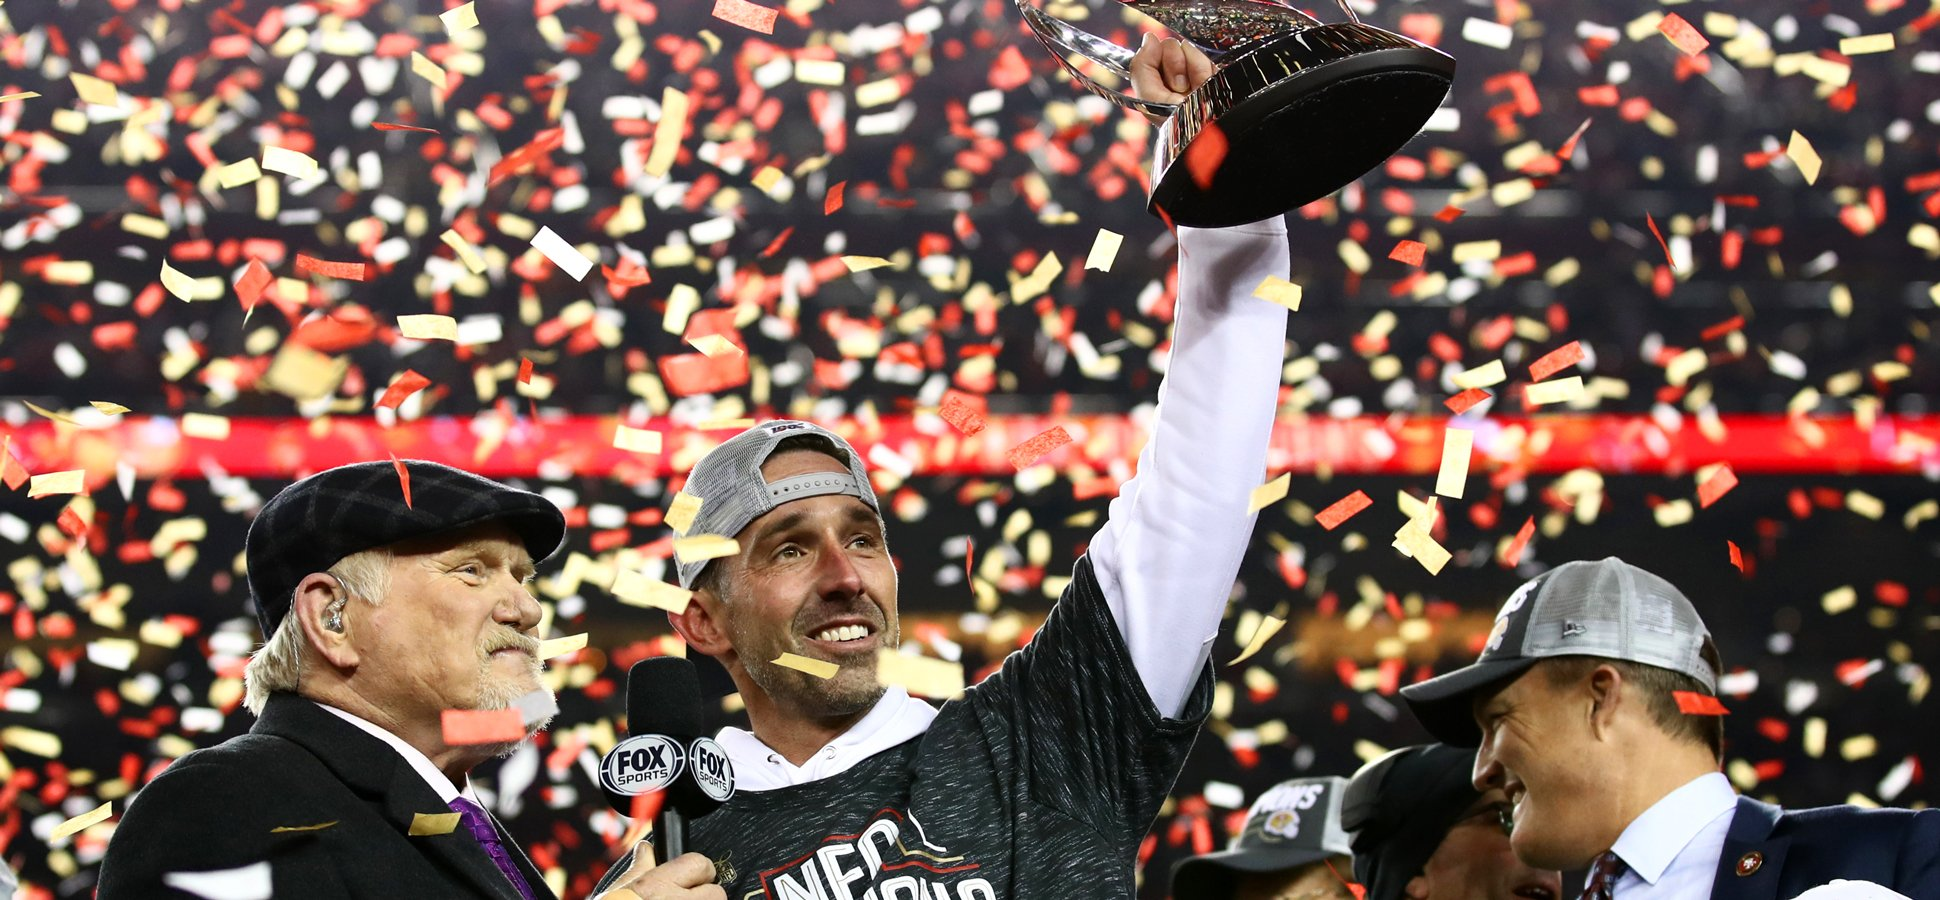 The San Francisco 49ers Are Heading to the Super Bowl Thanks in Part to a Tactic Learned in a Stanford Management Class